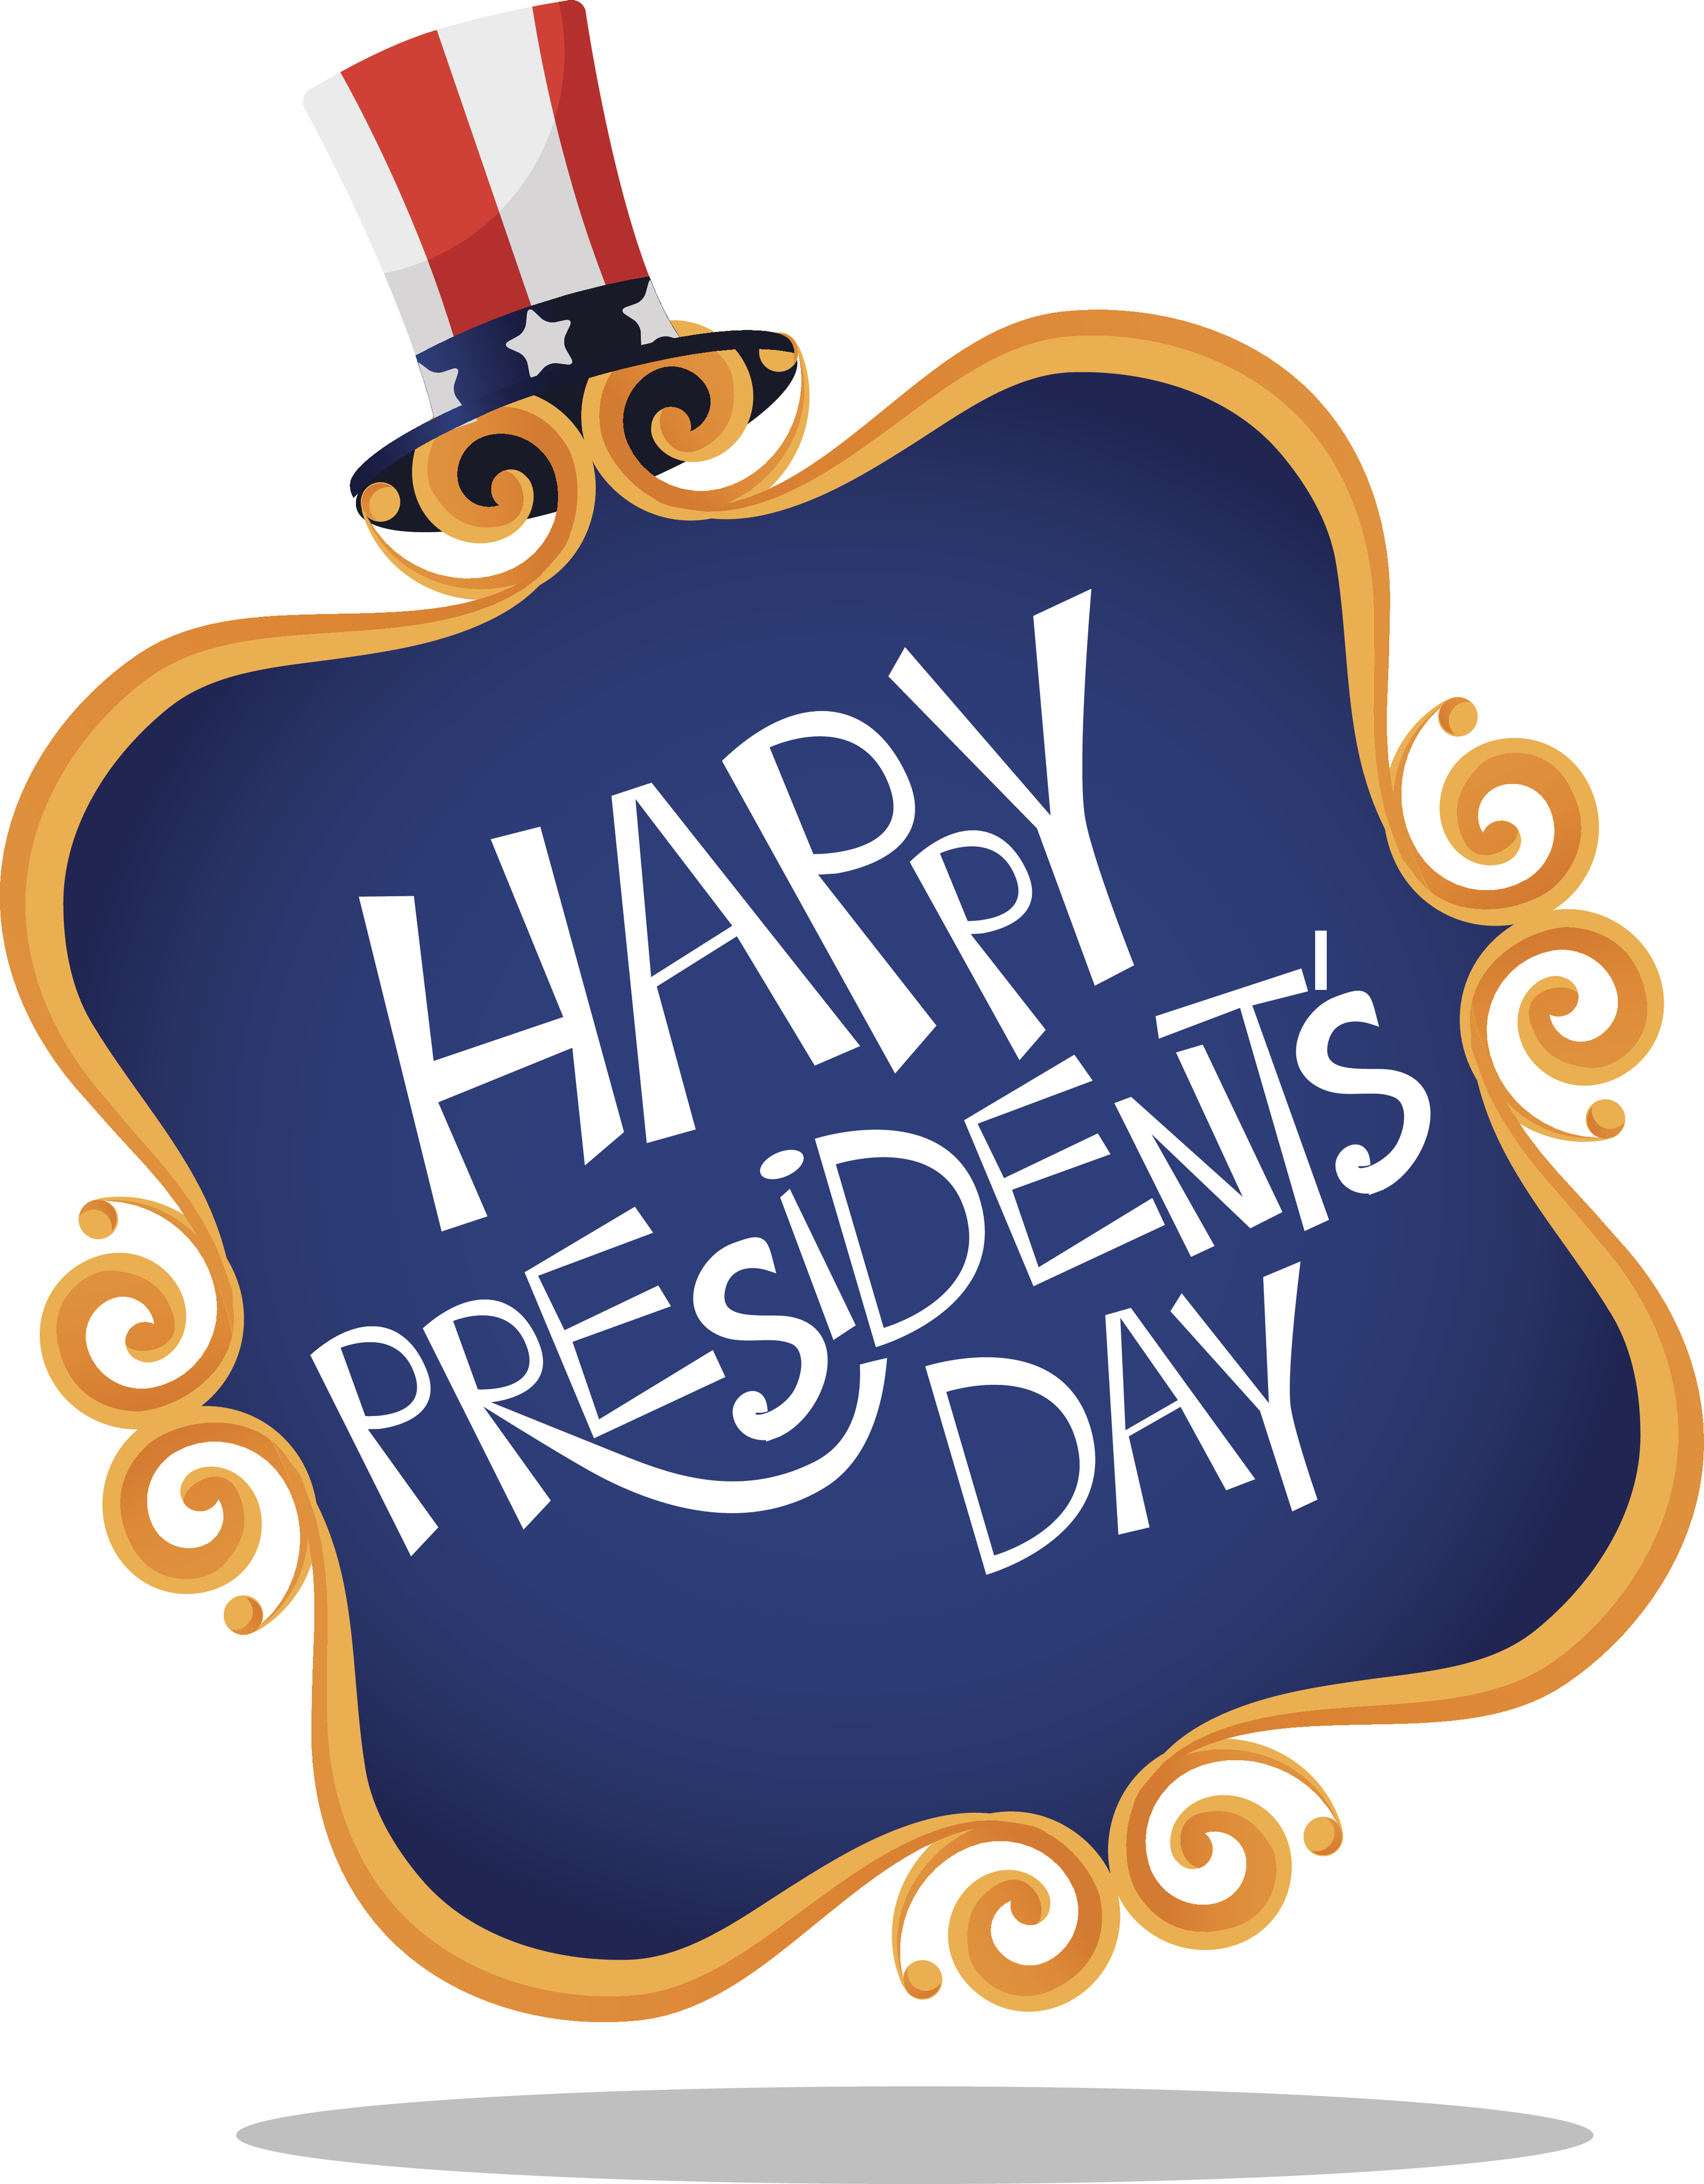 President's Day Office and Pharmacy Closings